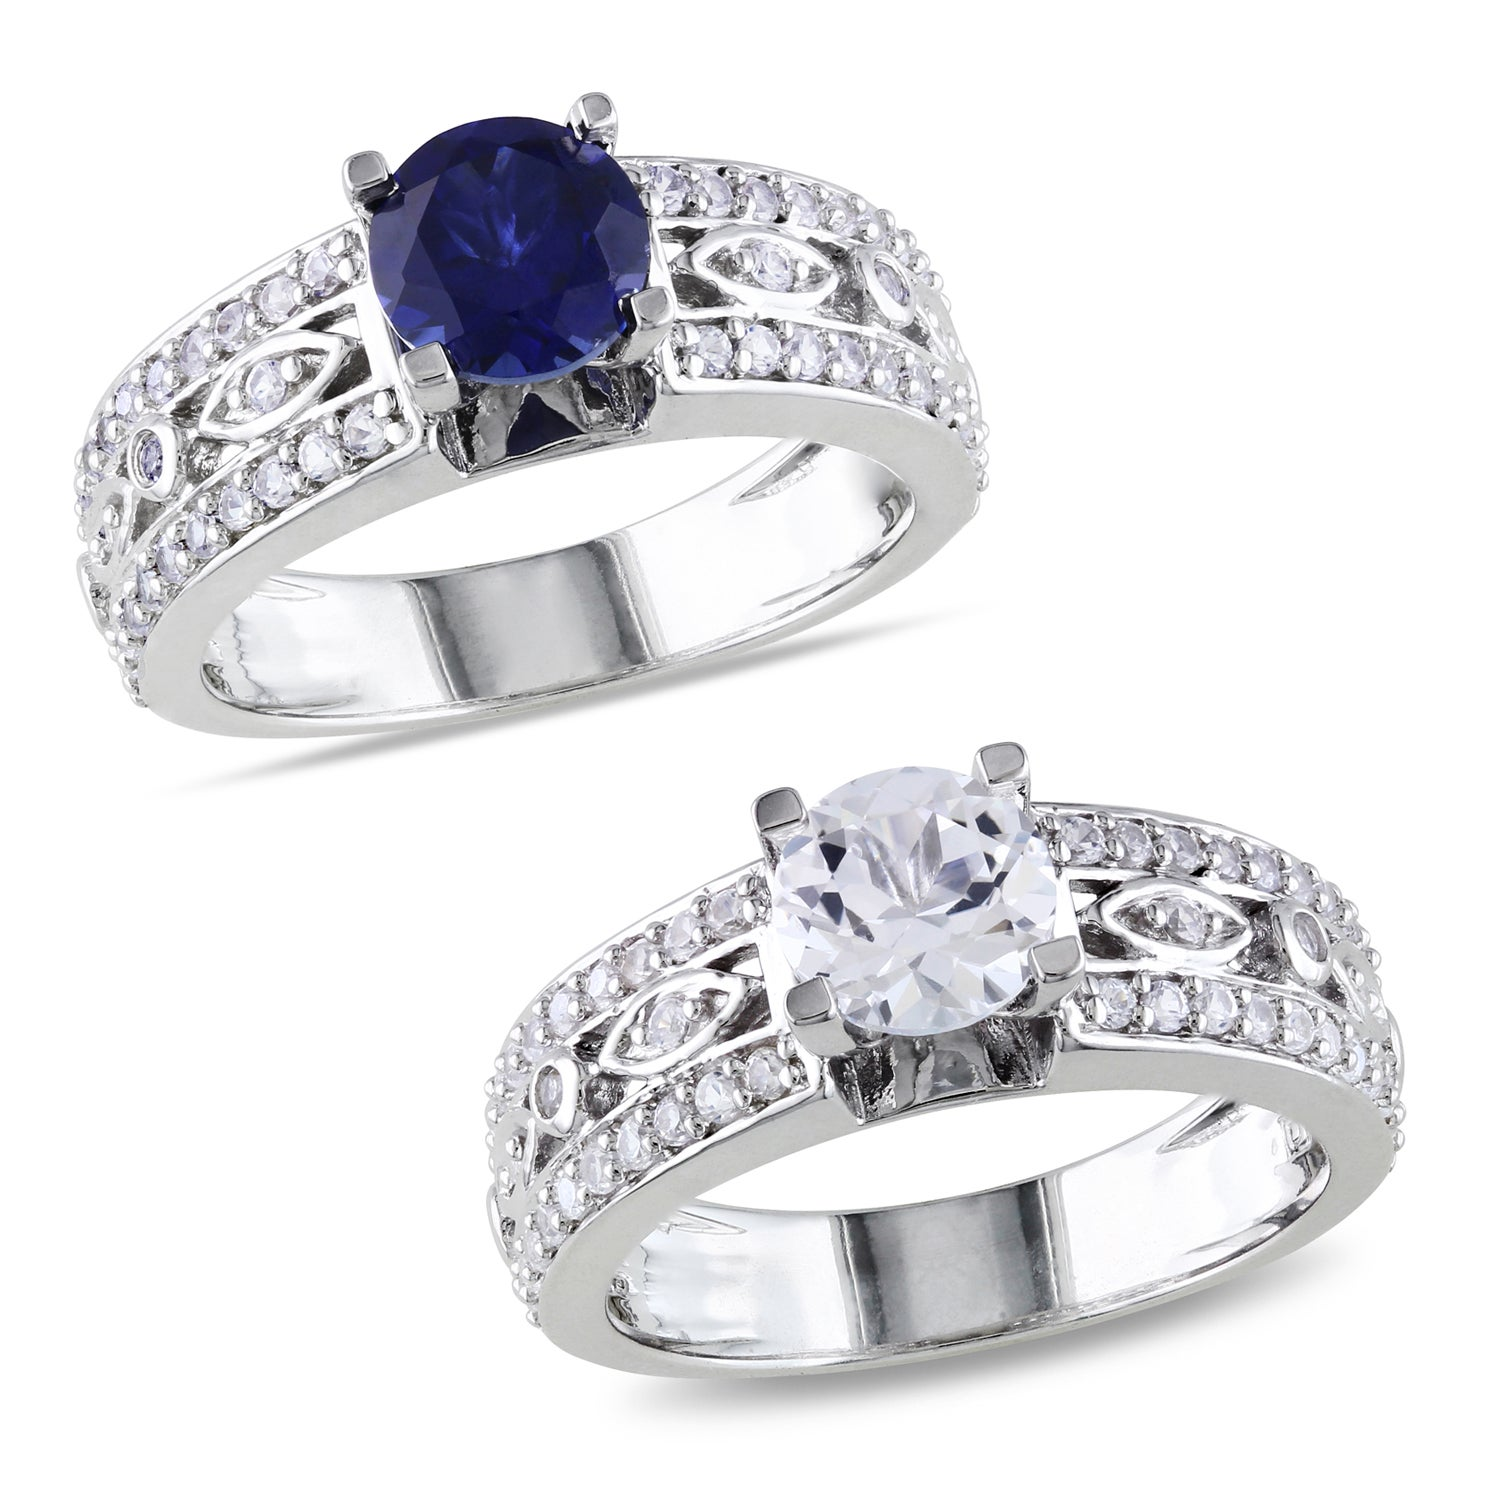 Miadora Sterling Silver White or Blue Sapphire Engagement Ring